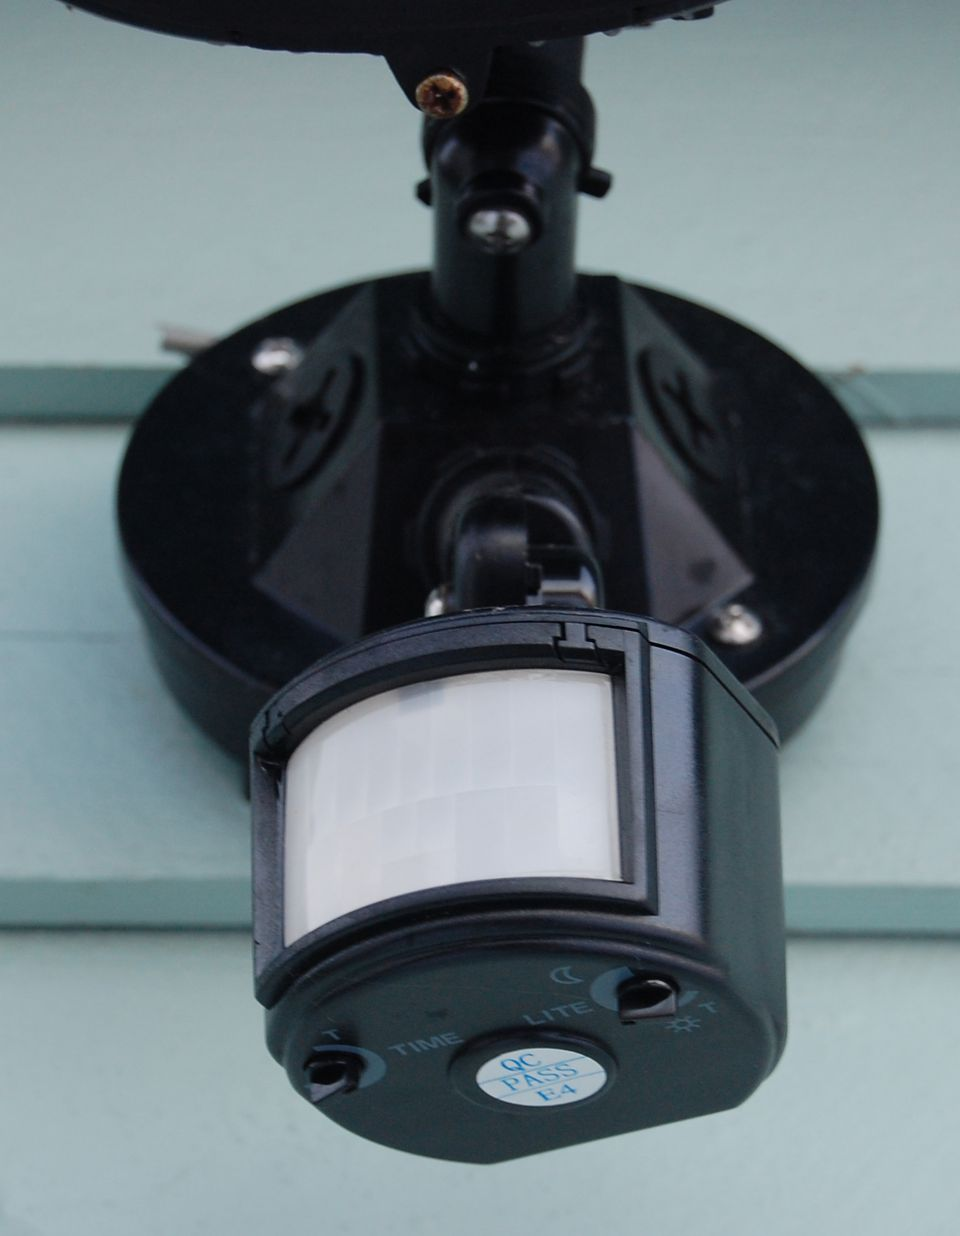 Security Lights That Detect Motion And Body Heat